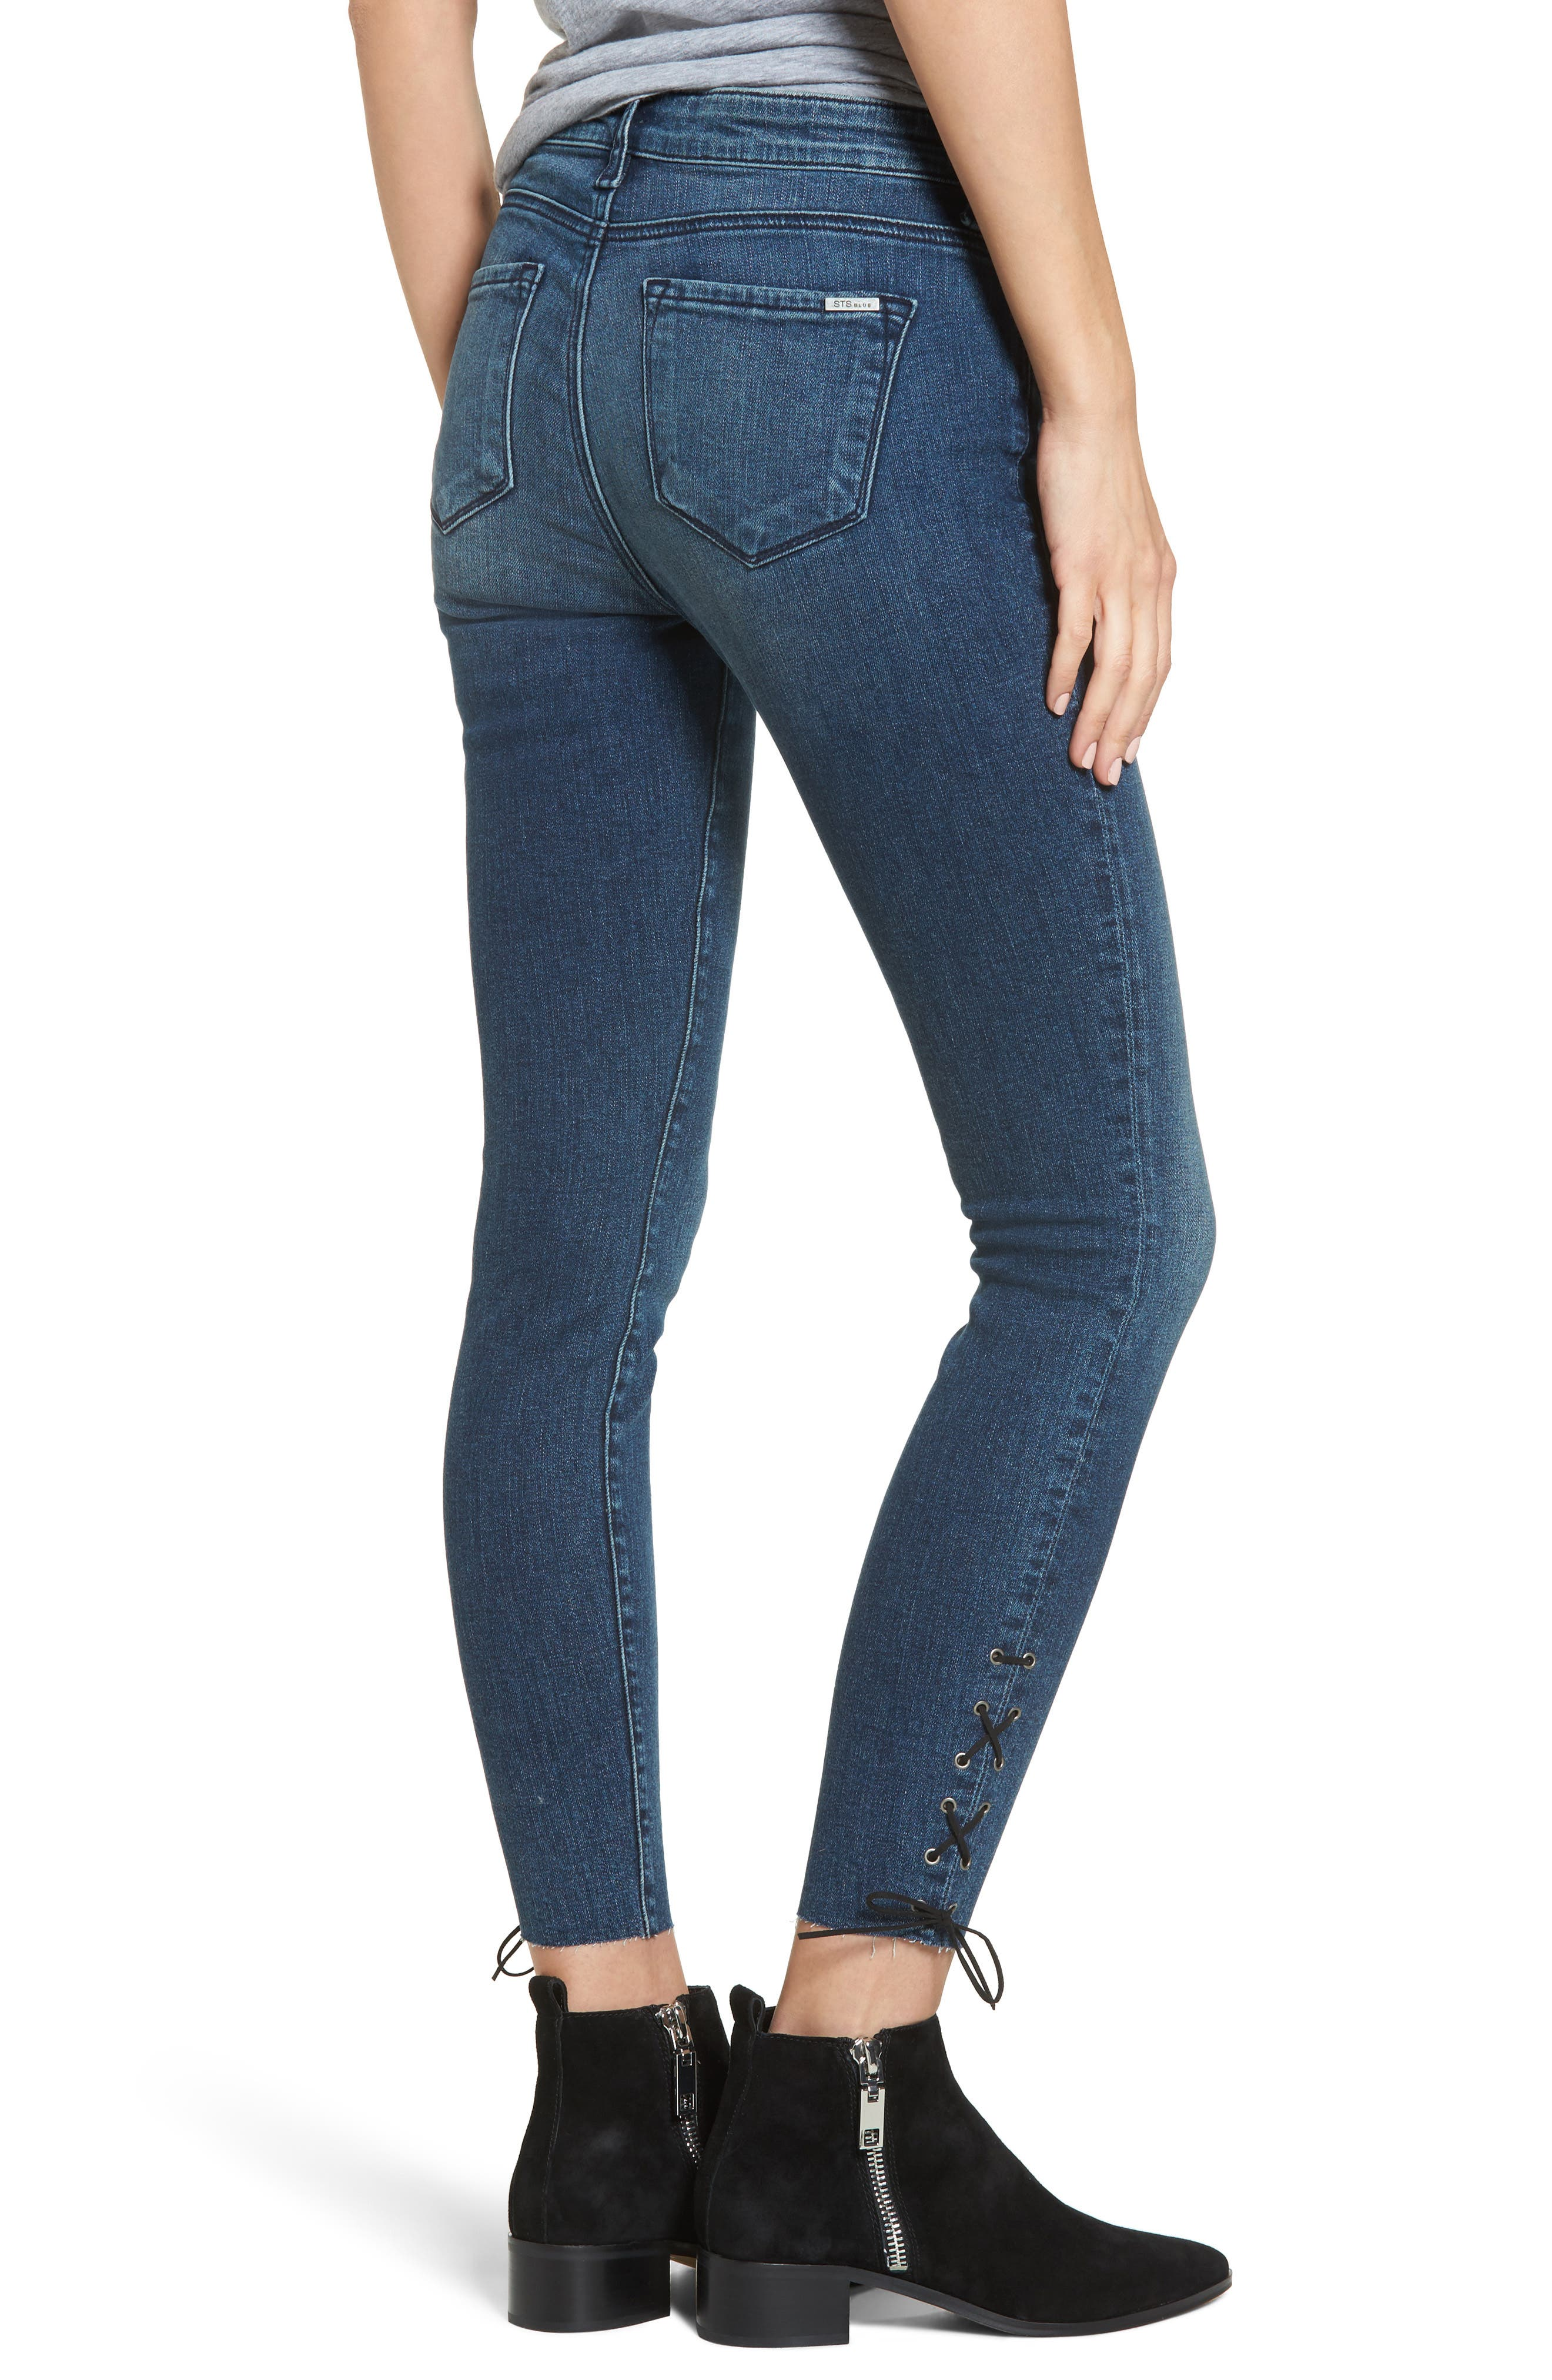 Emma Lace-Up Ankle Skinny Jeans,                             Alternate thumbnail 2, color,                             400